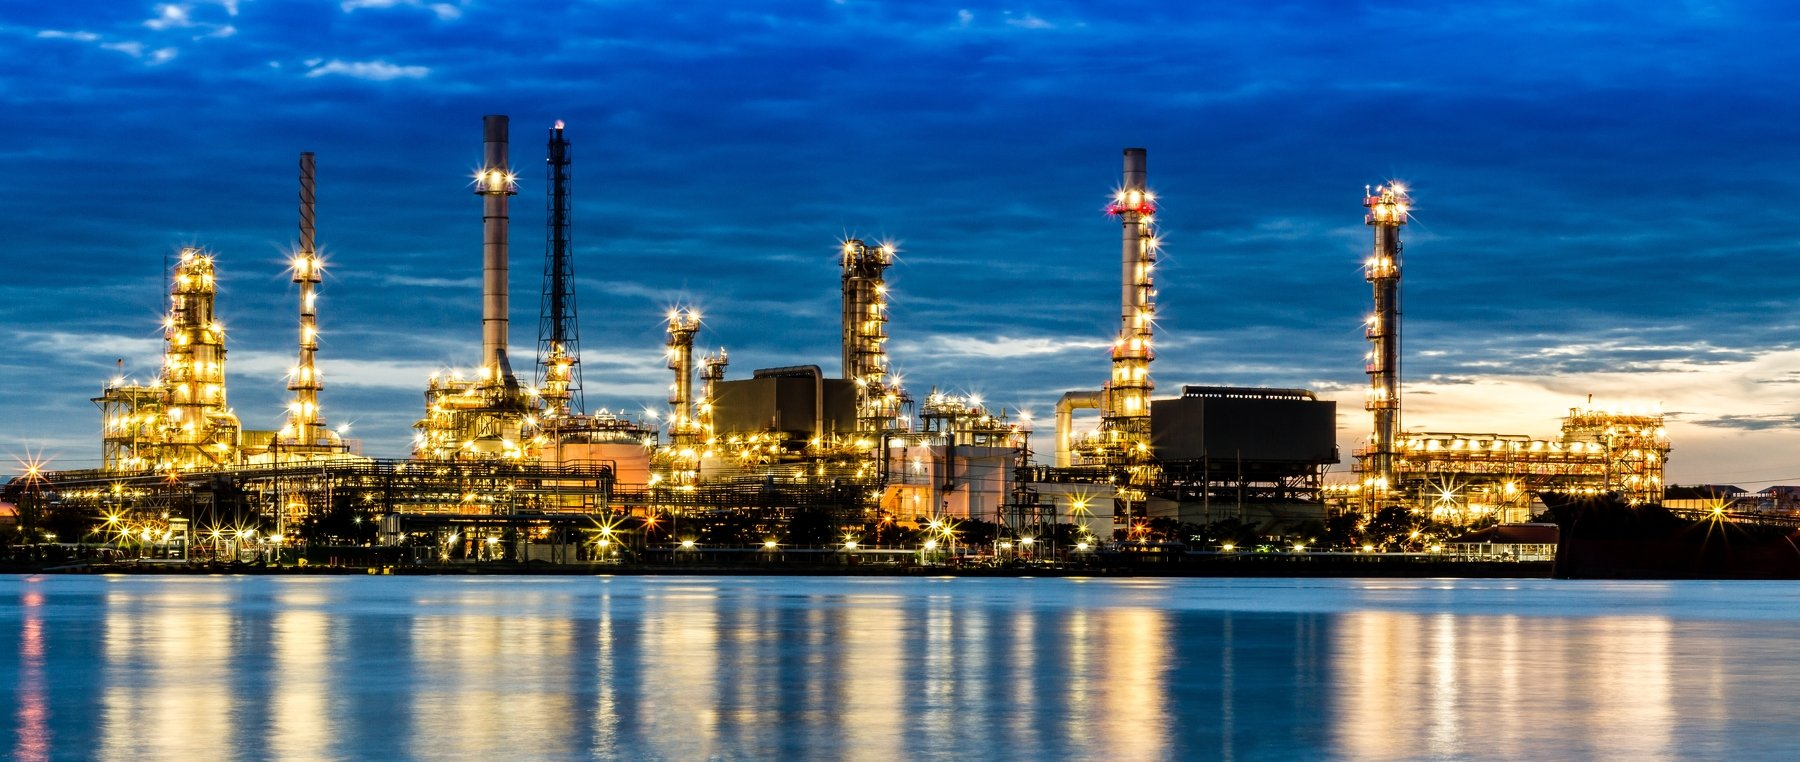 blue, chemical, chemistry, chimney, construction, energy, engineer, engineering, environment, equipment, factory, fuel, gas, gas-refinery, gasoline, global, heavy, industrial, industrial-plant, industry, light, manufacturing, metal, night, oil, petrochem, Sasin Tipchai